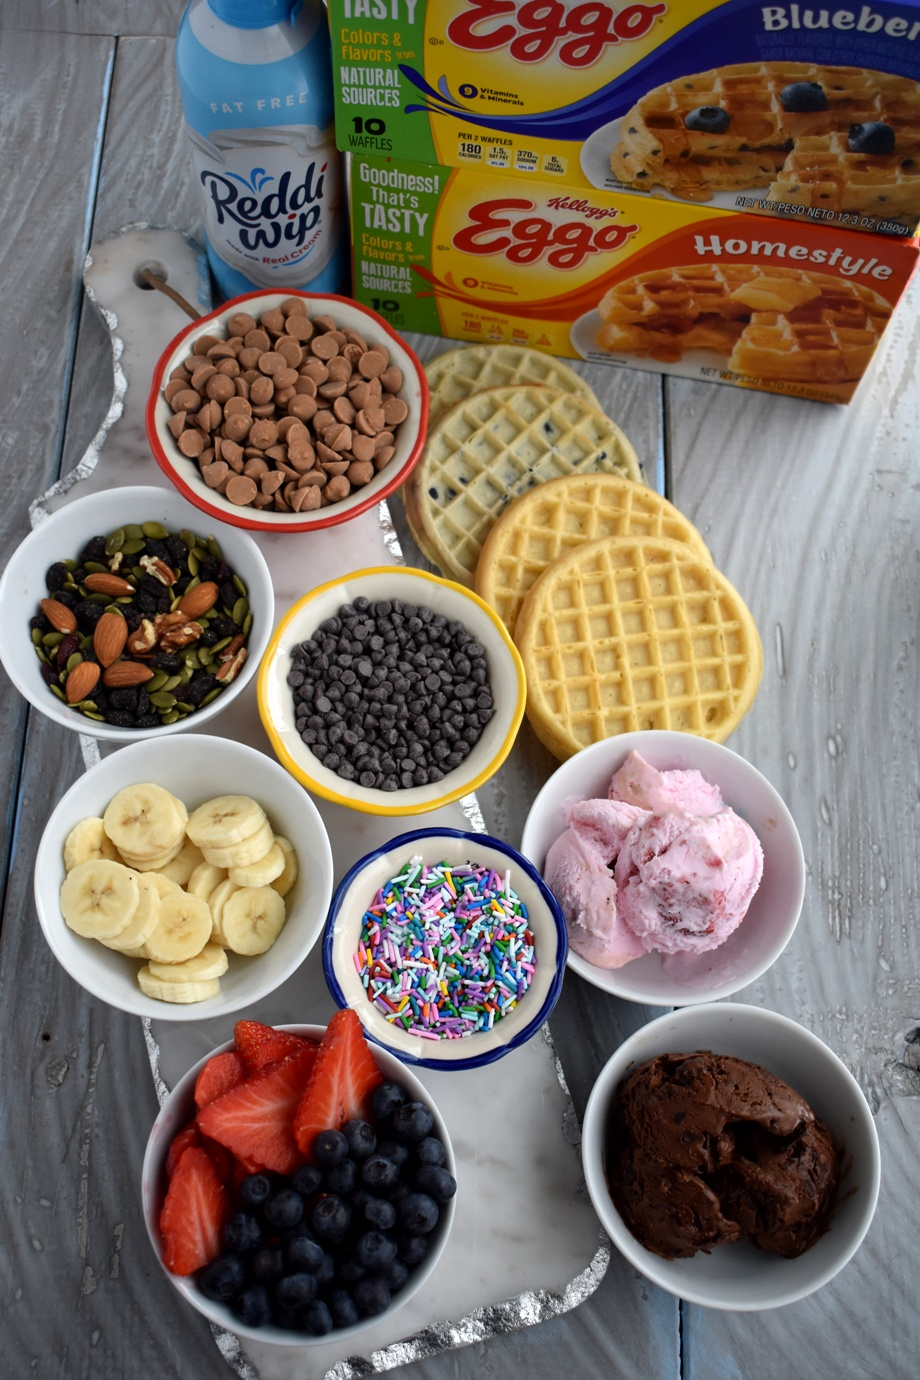 Make your own dessert waffle